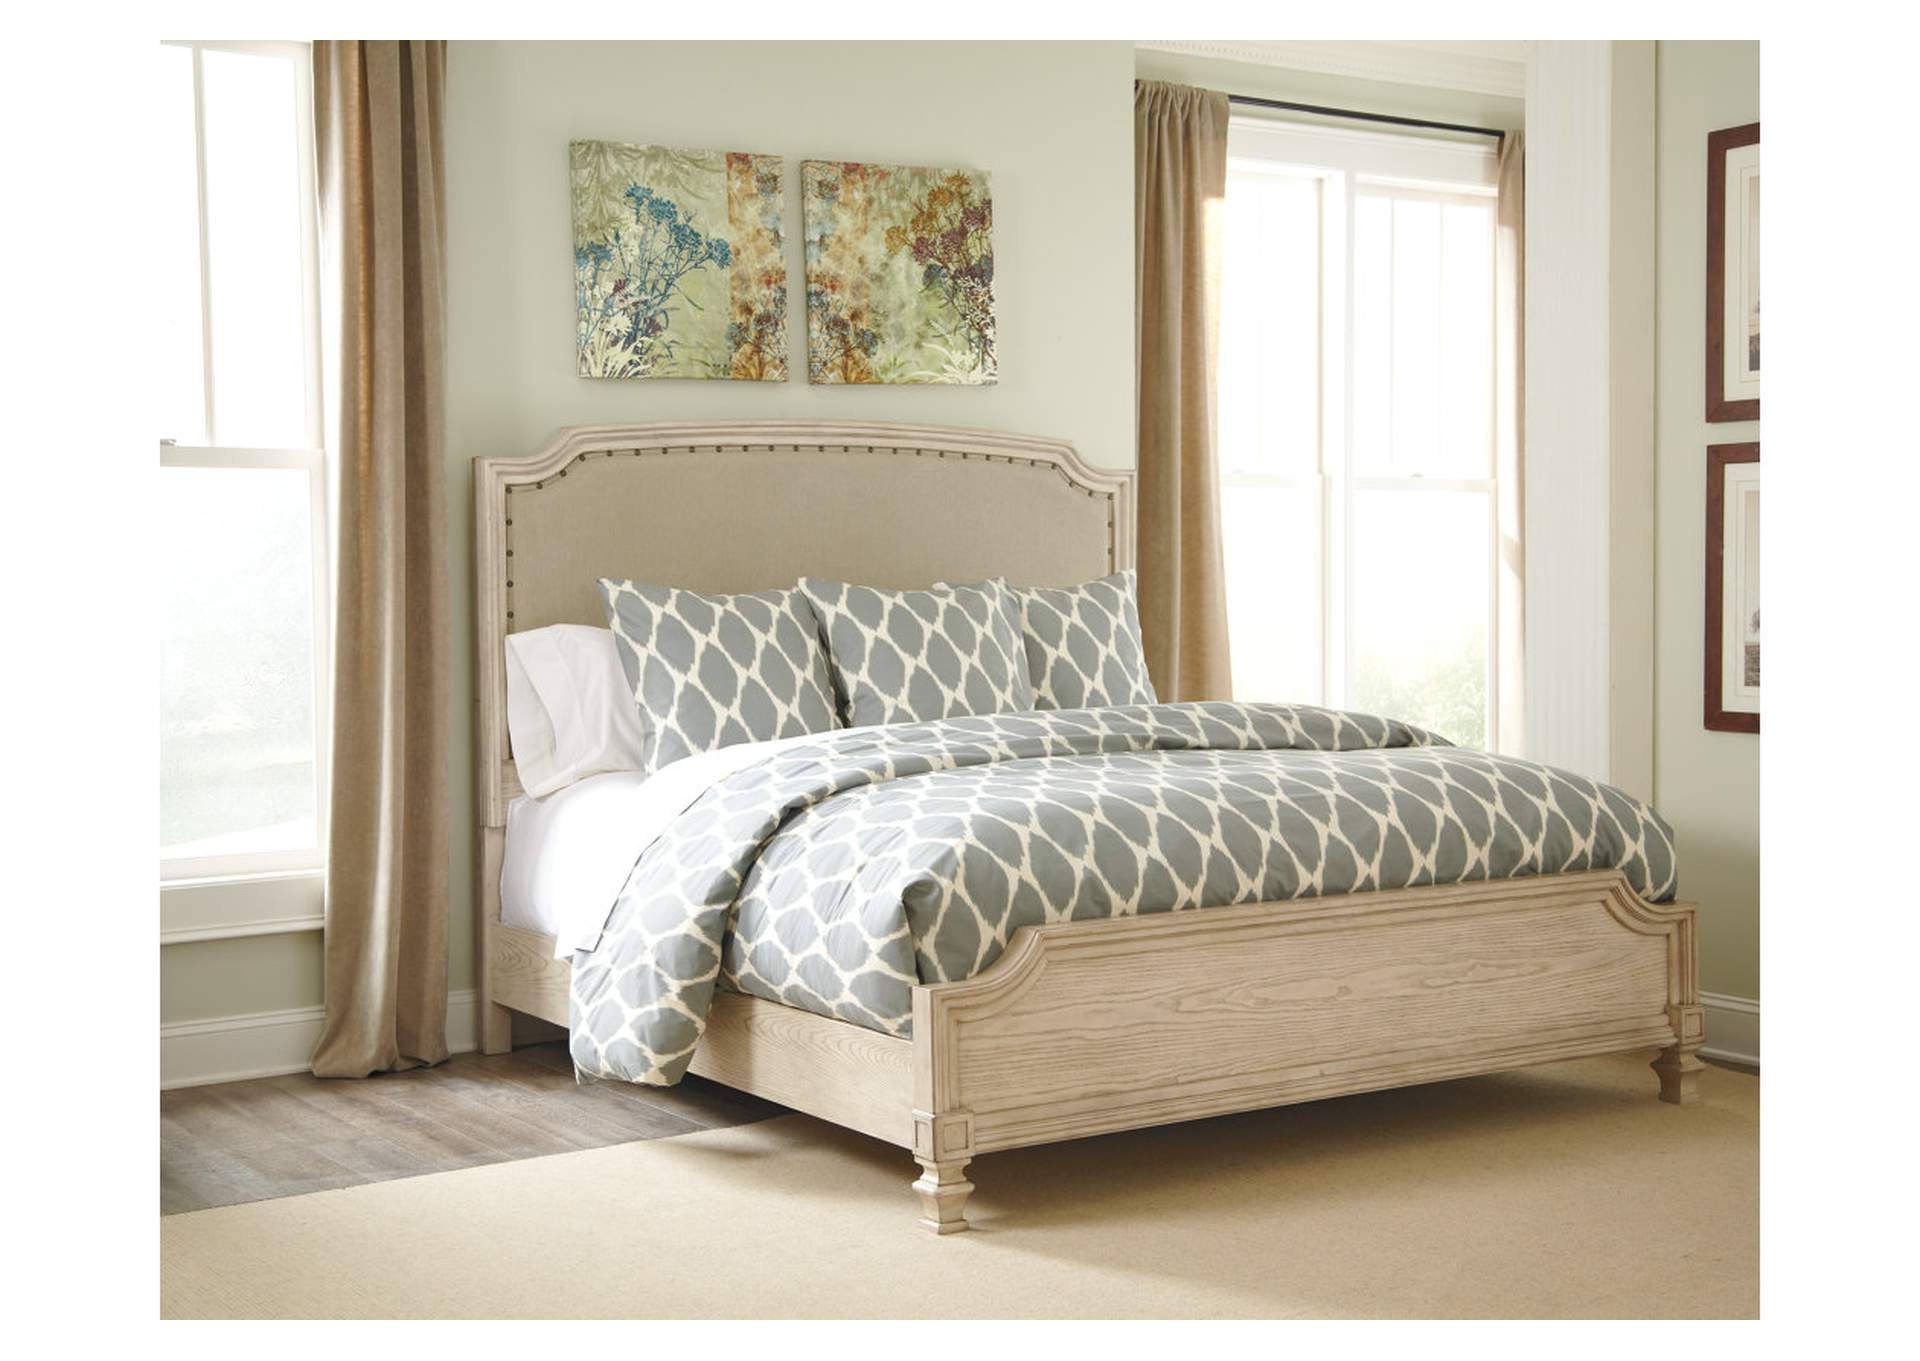 Demarlos Queen Upholstered Panel Bed,Signature Design By Ashley